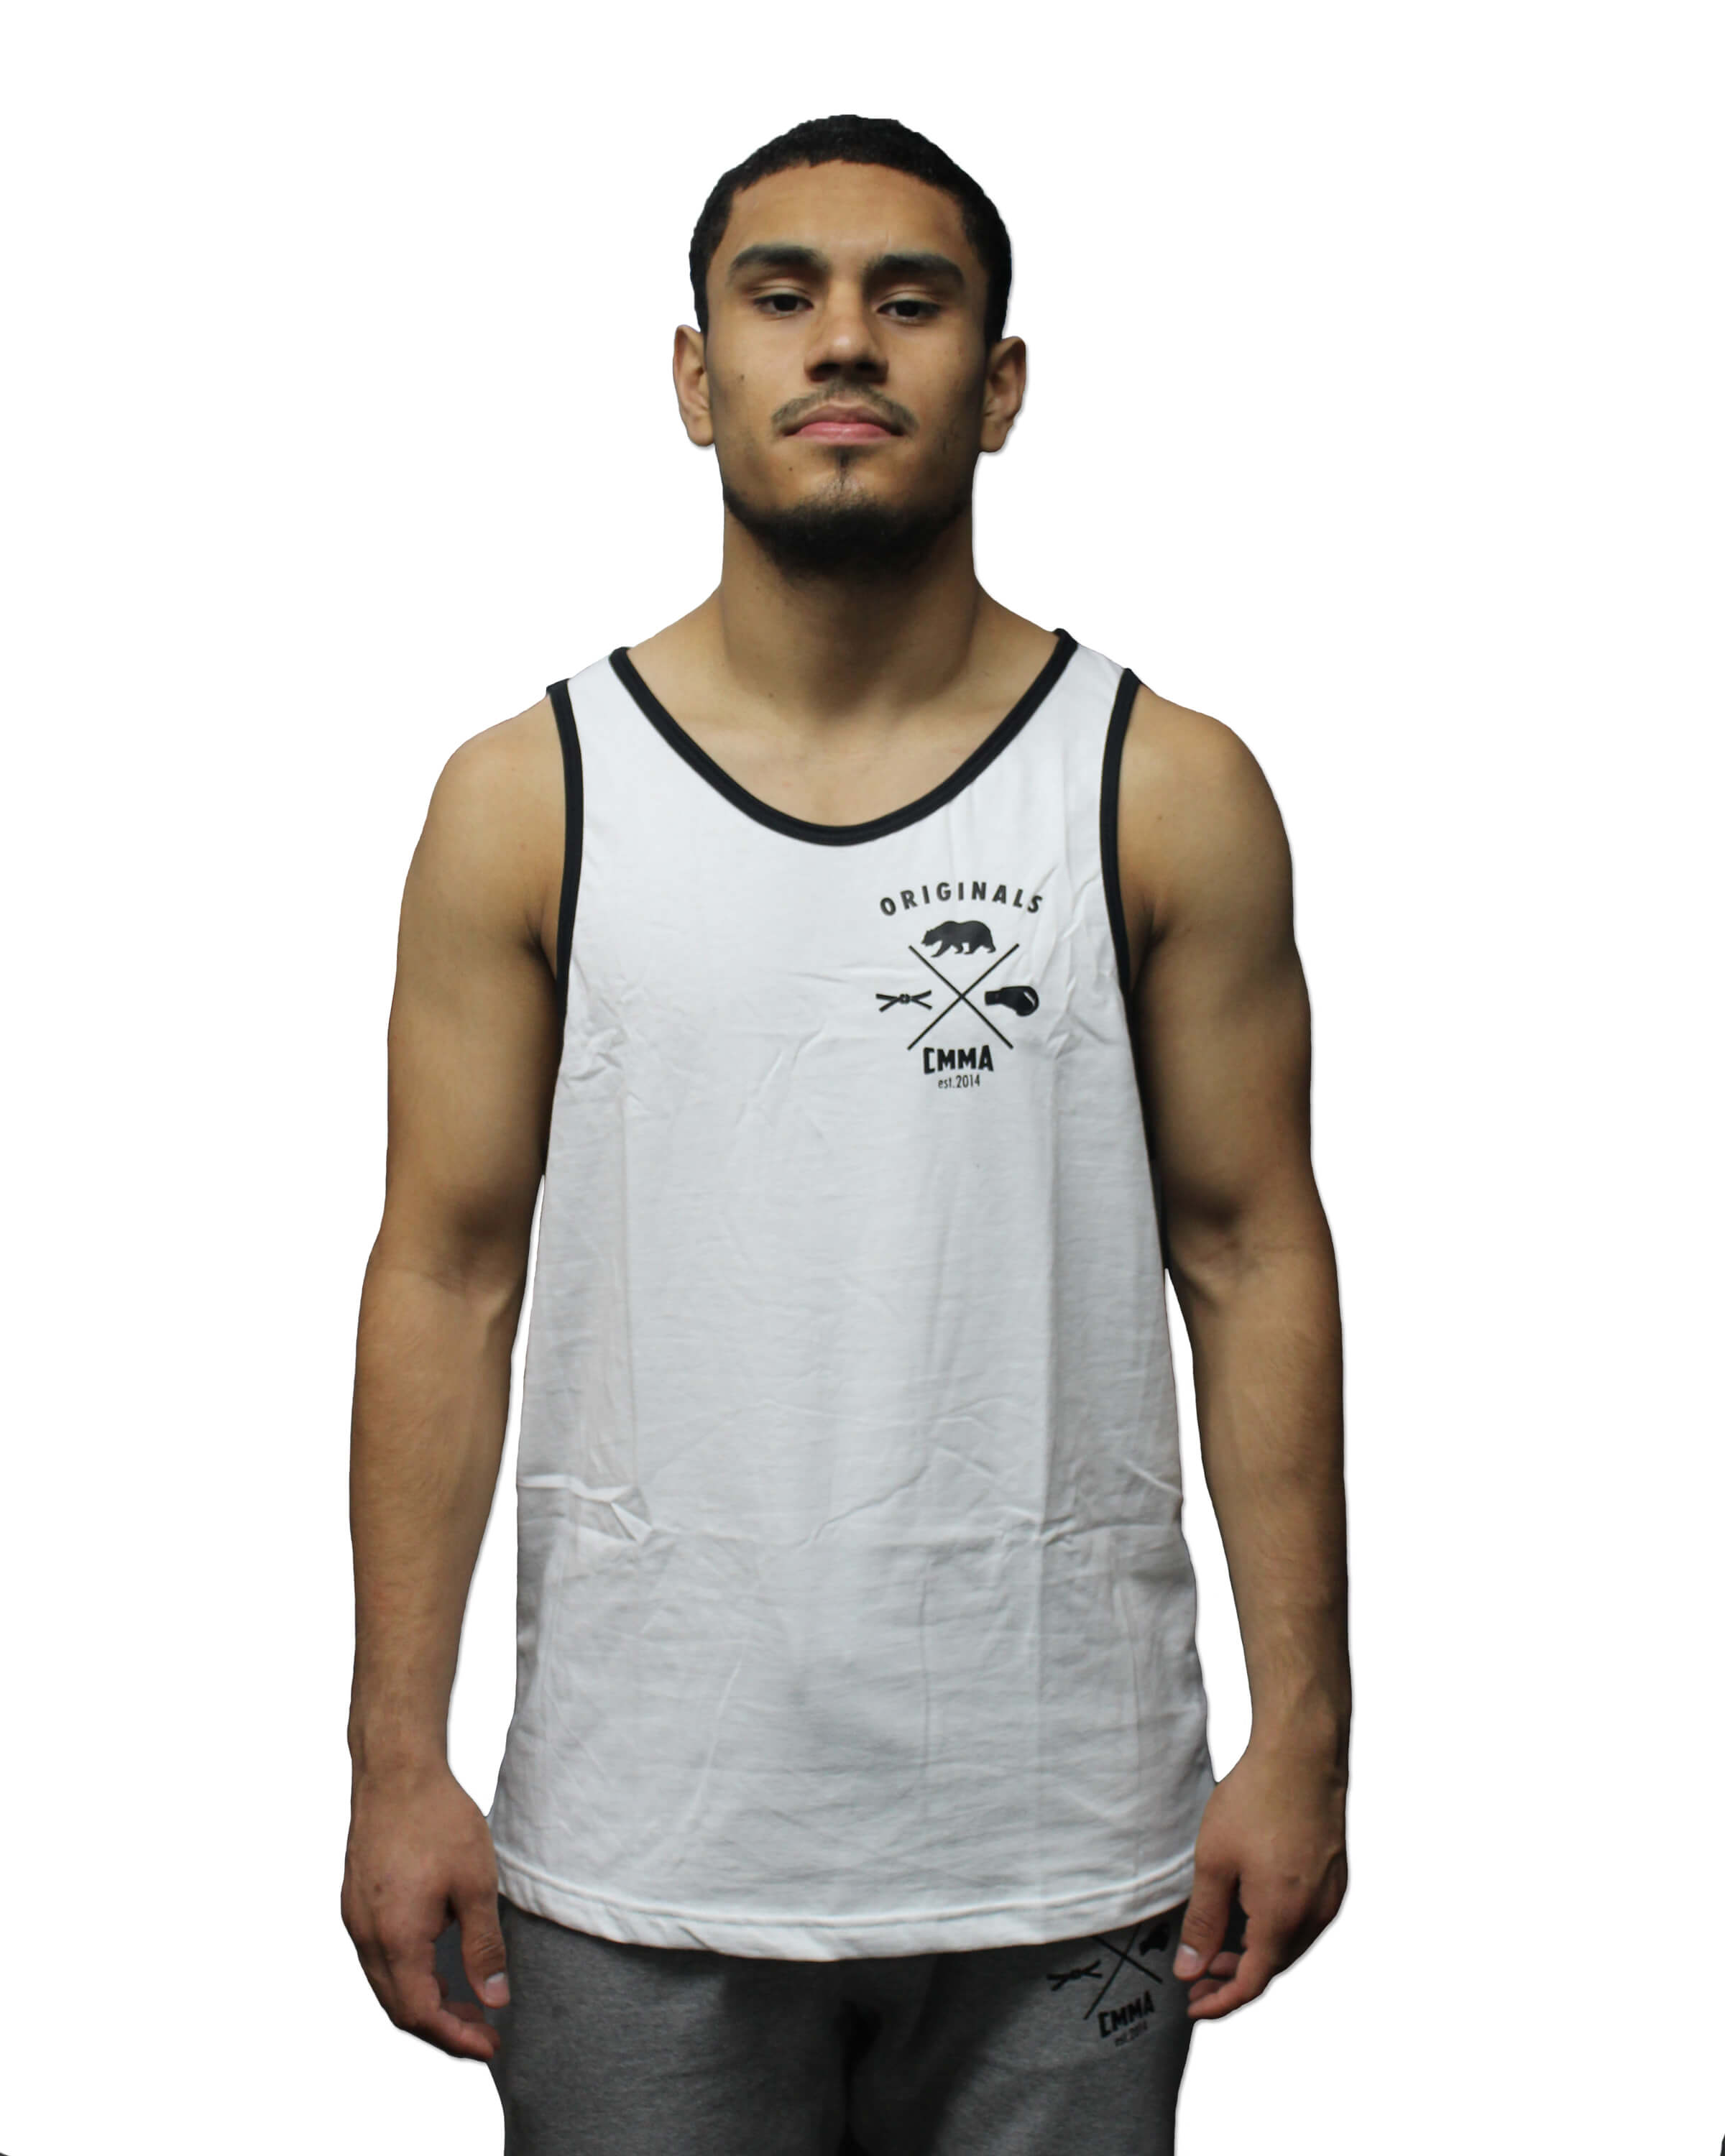 CMMA Originals Tank Top White